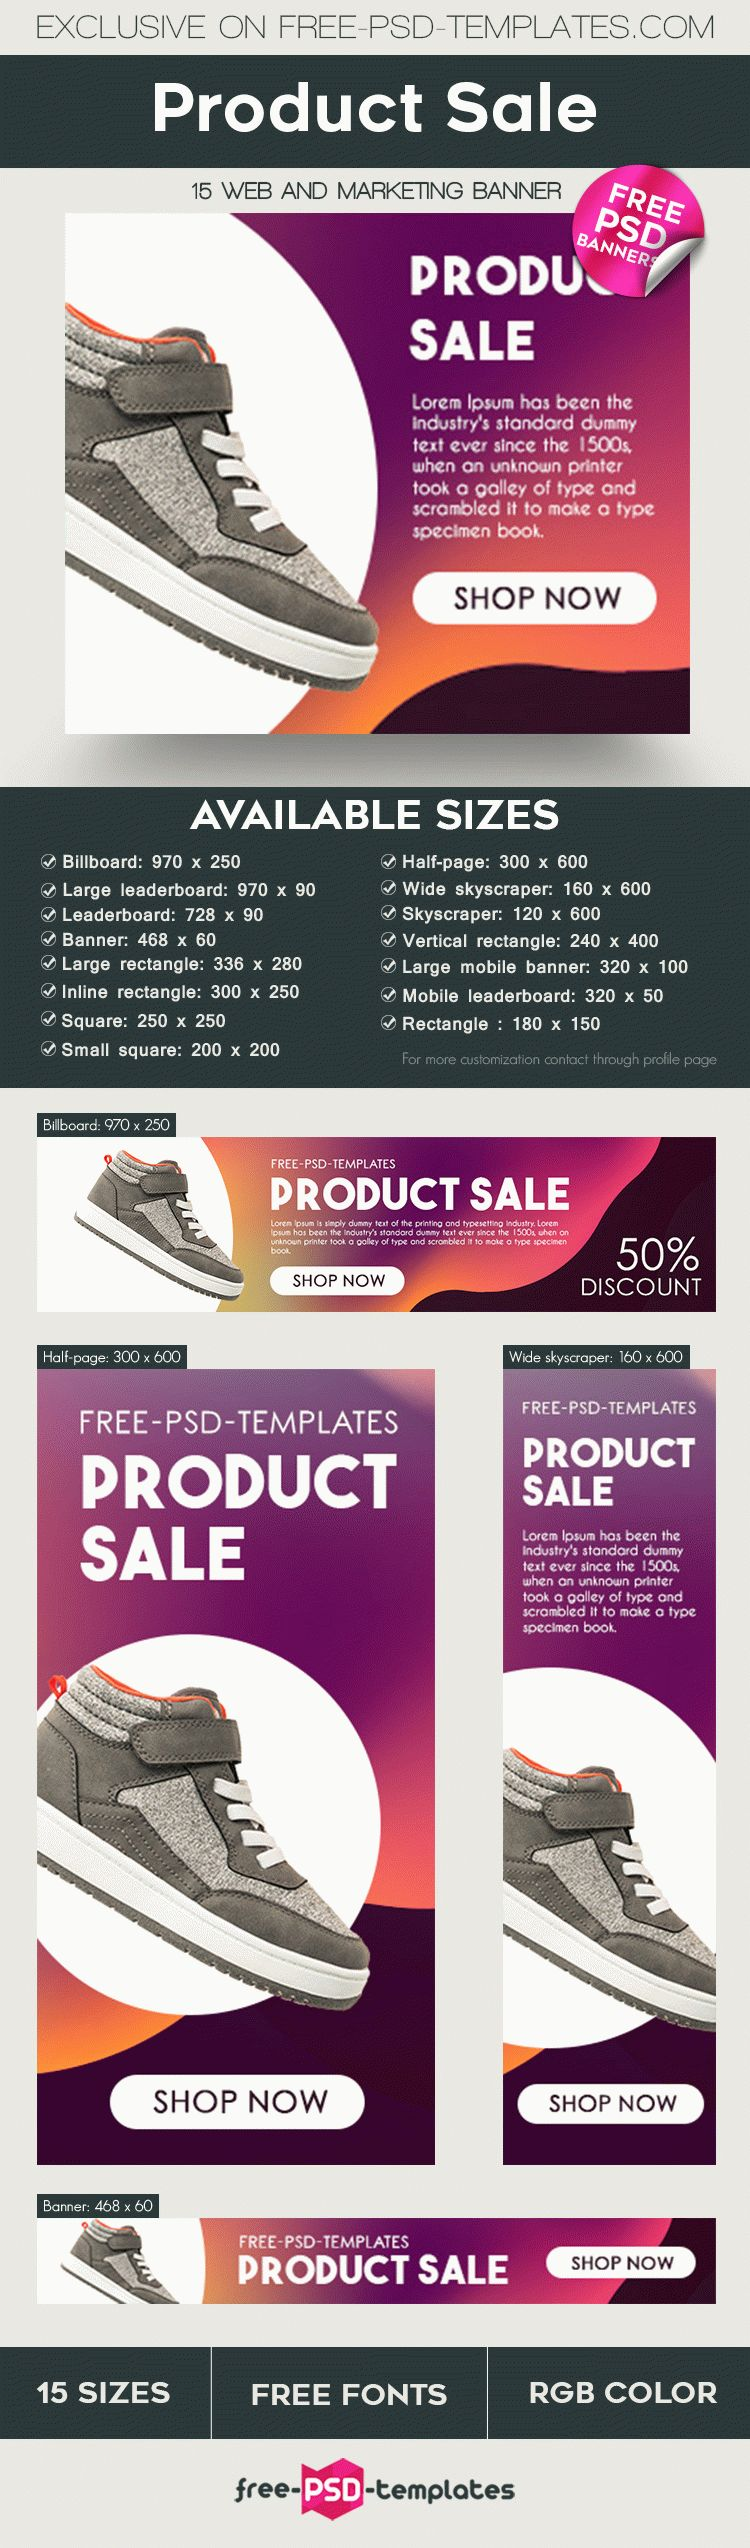 15 free product sale banners collection in psd free psd templates